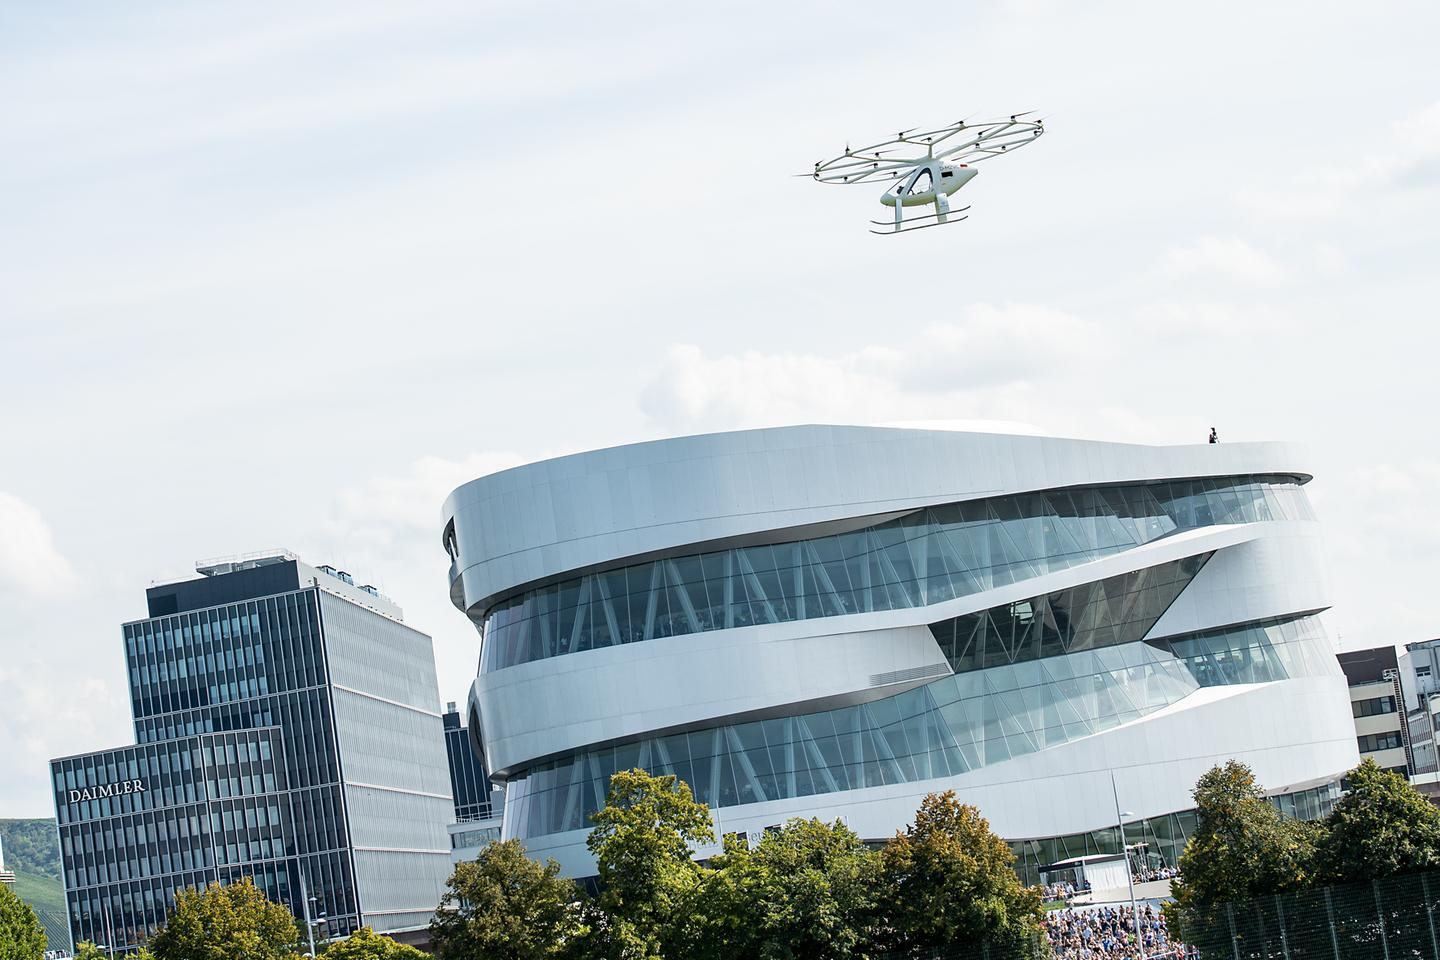 This latest outing for the Volocopter was a part of a two-day event called Vision Smart City